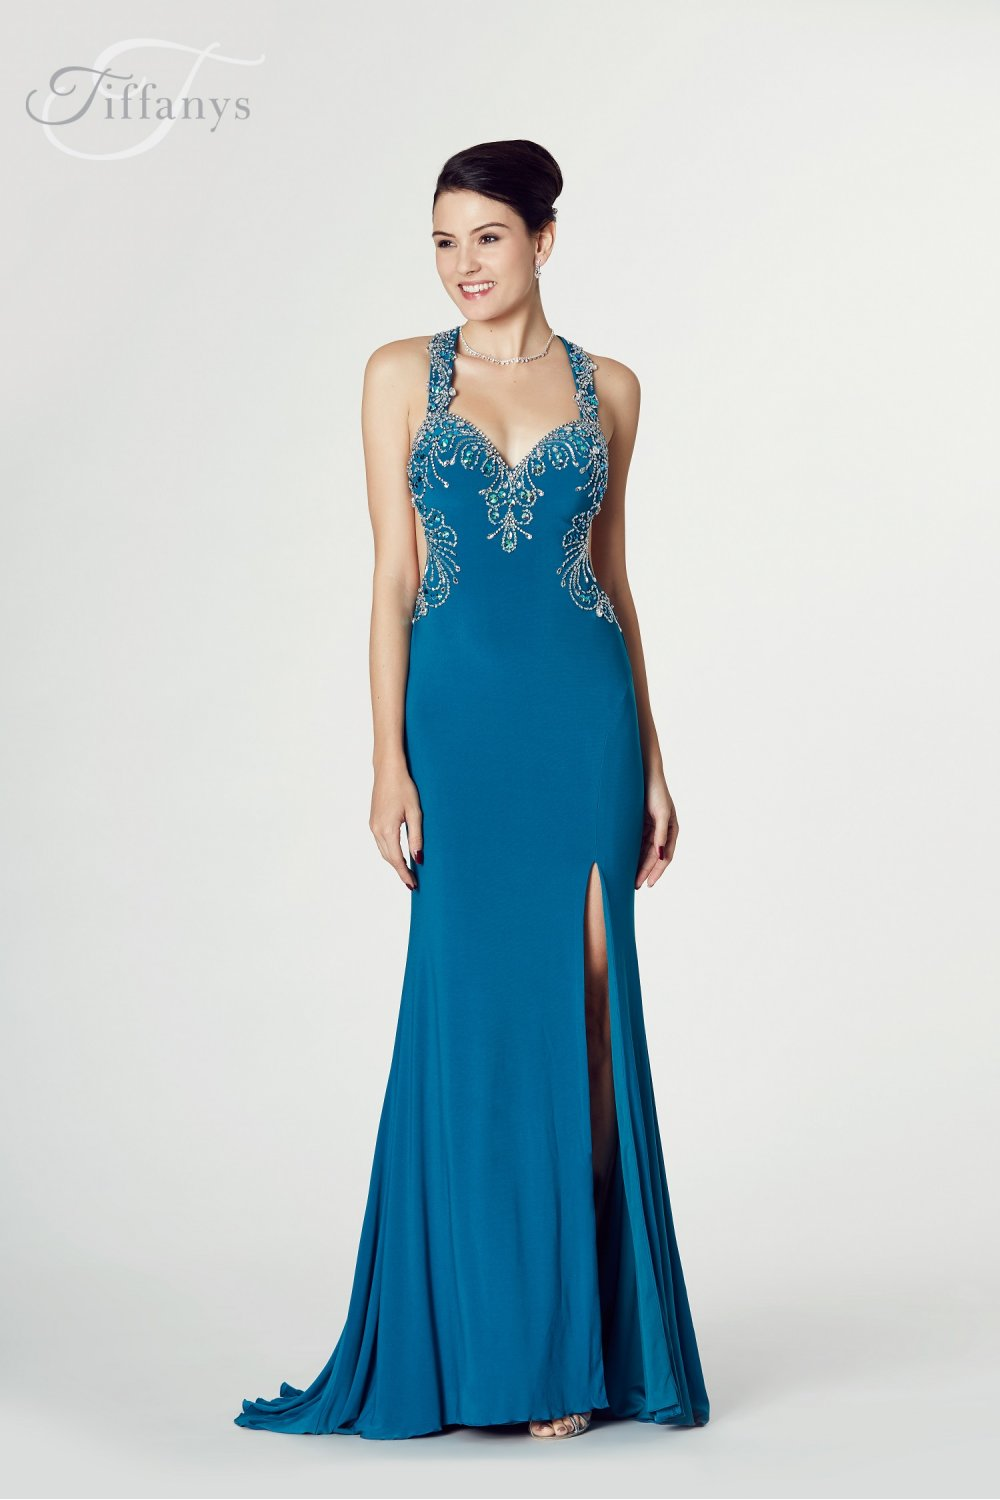 Tiffany Illusion Teal Carla Prom Jersey dress with beaded bodice